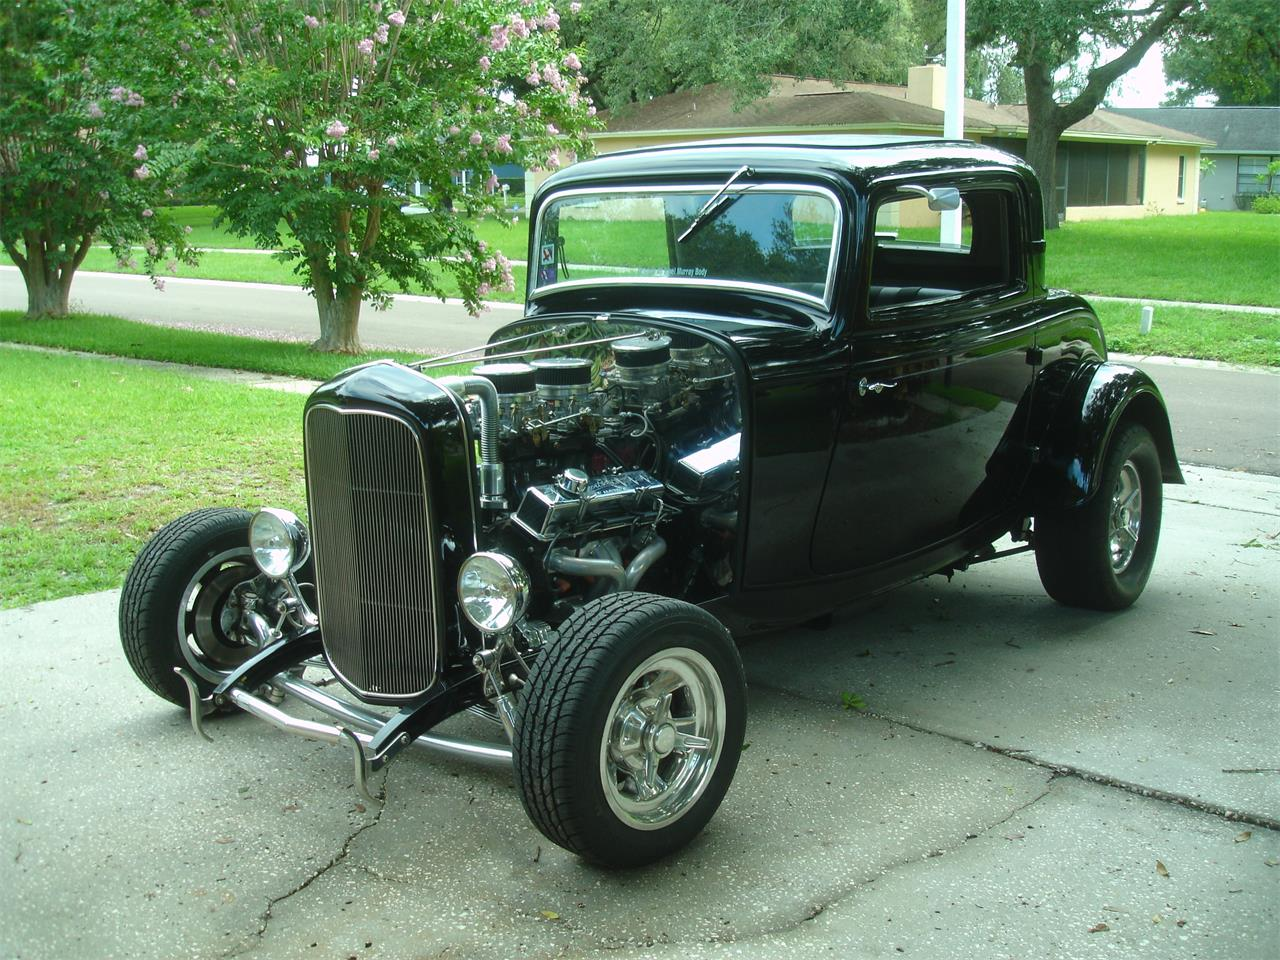 Chevy Dealers Tampa >> 1932 Ford Coupe for Sale | ClassicCars.com | CC-865290